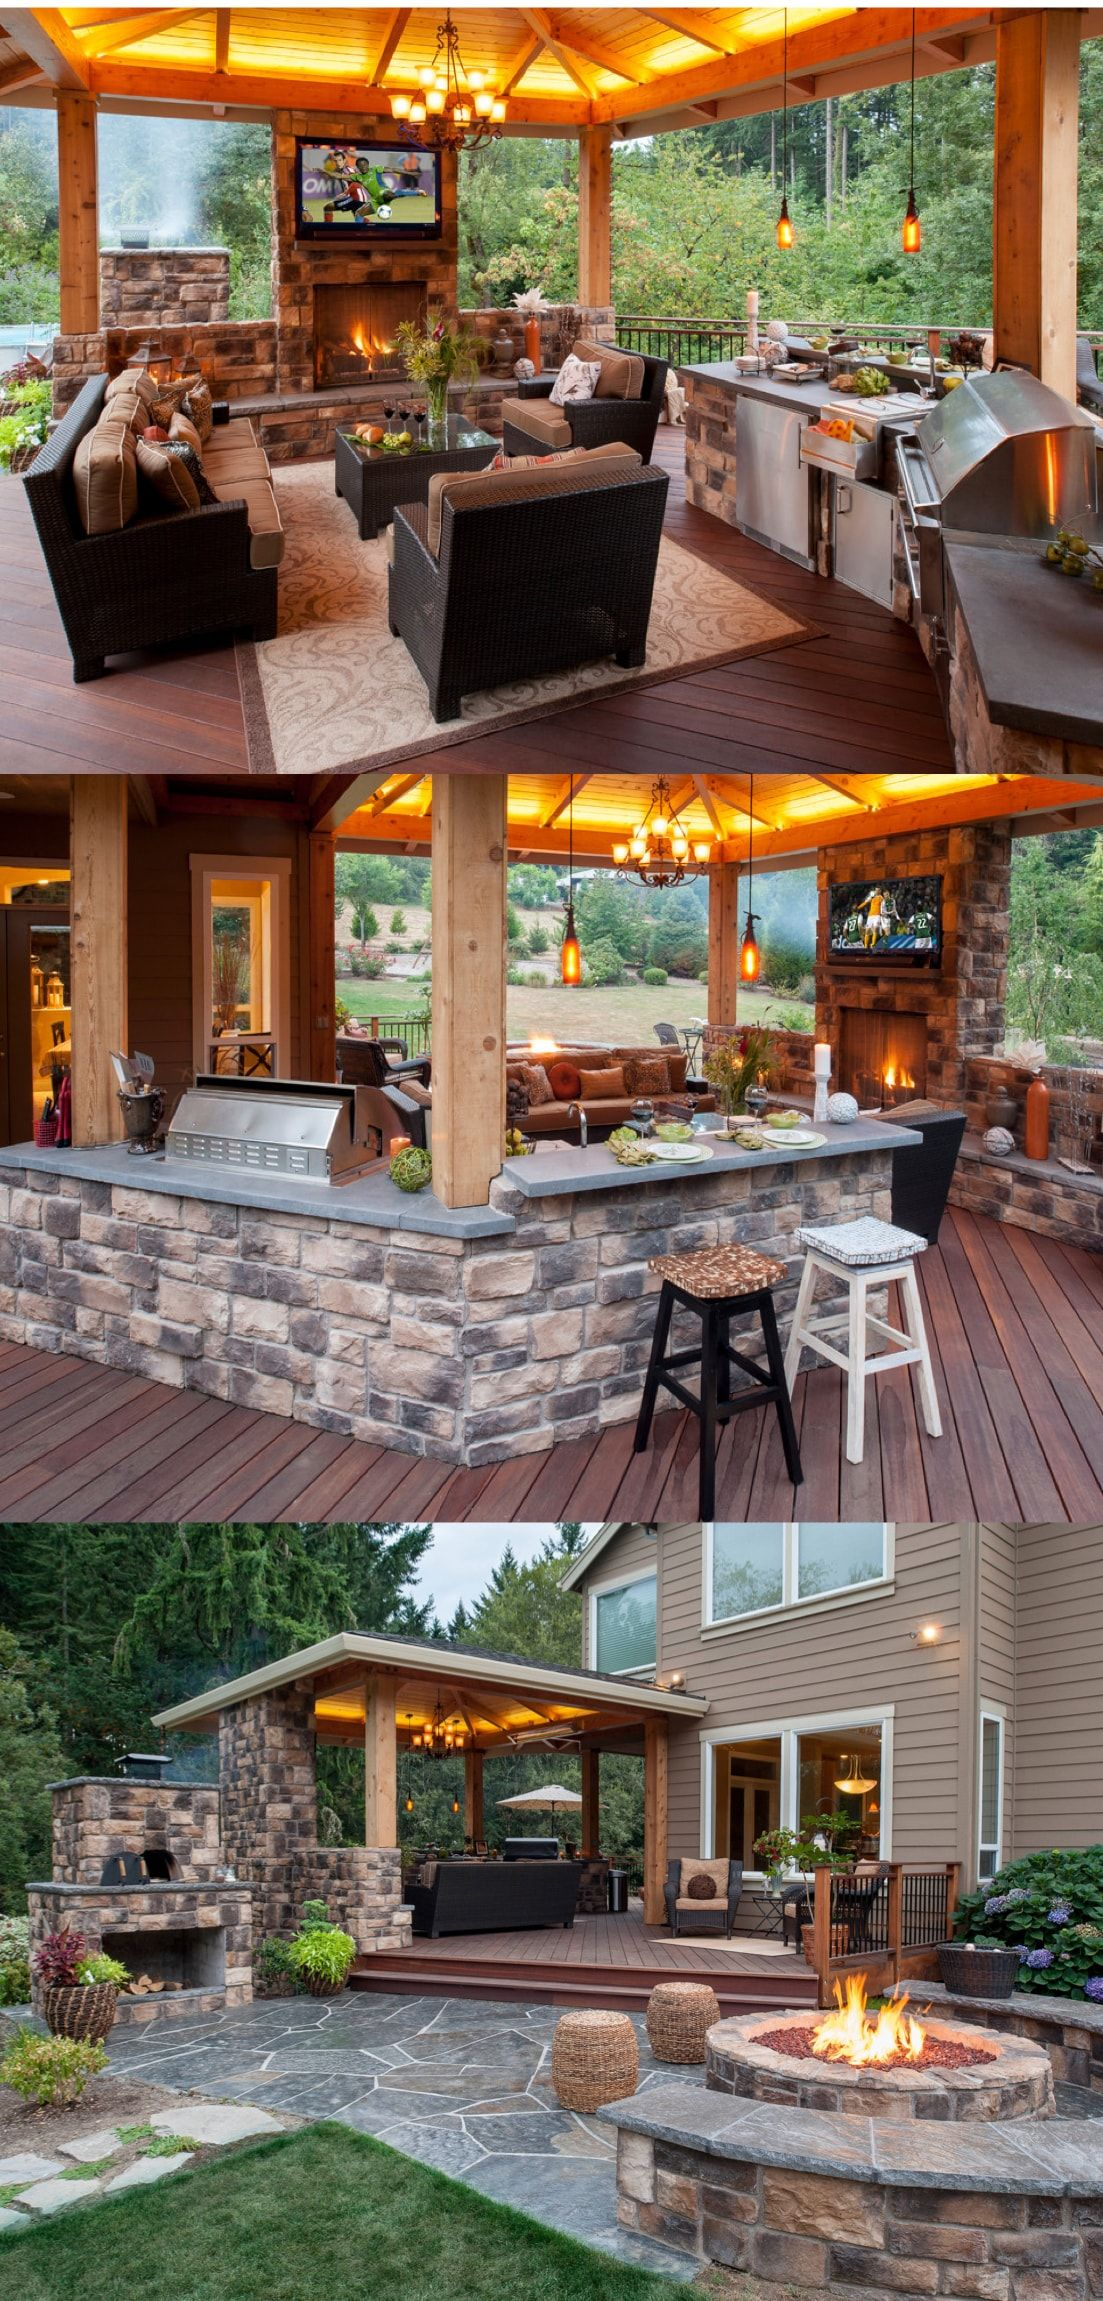 Garten Lounge Planer Amazing Outdoor Kitchen And Lounge Modern Outdoor